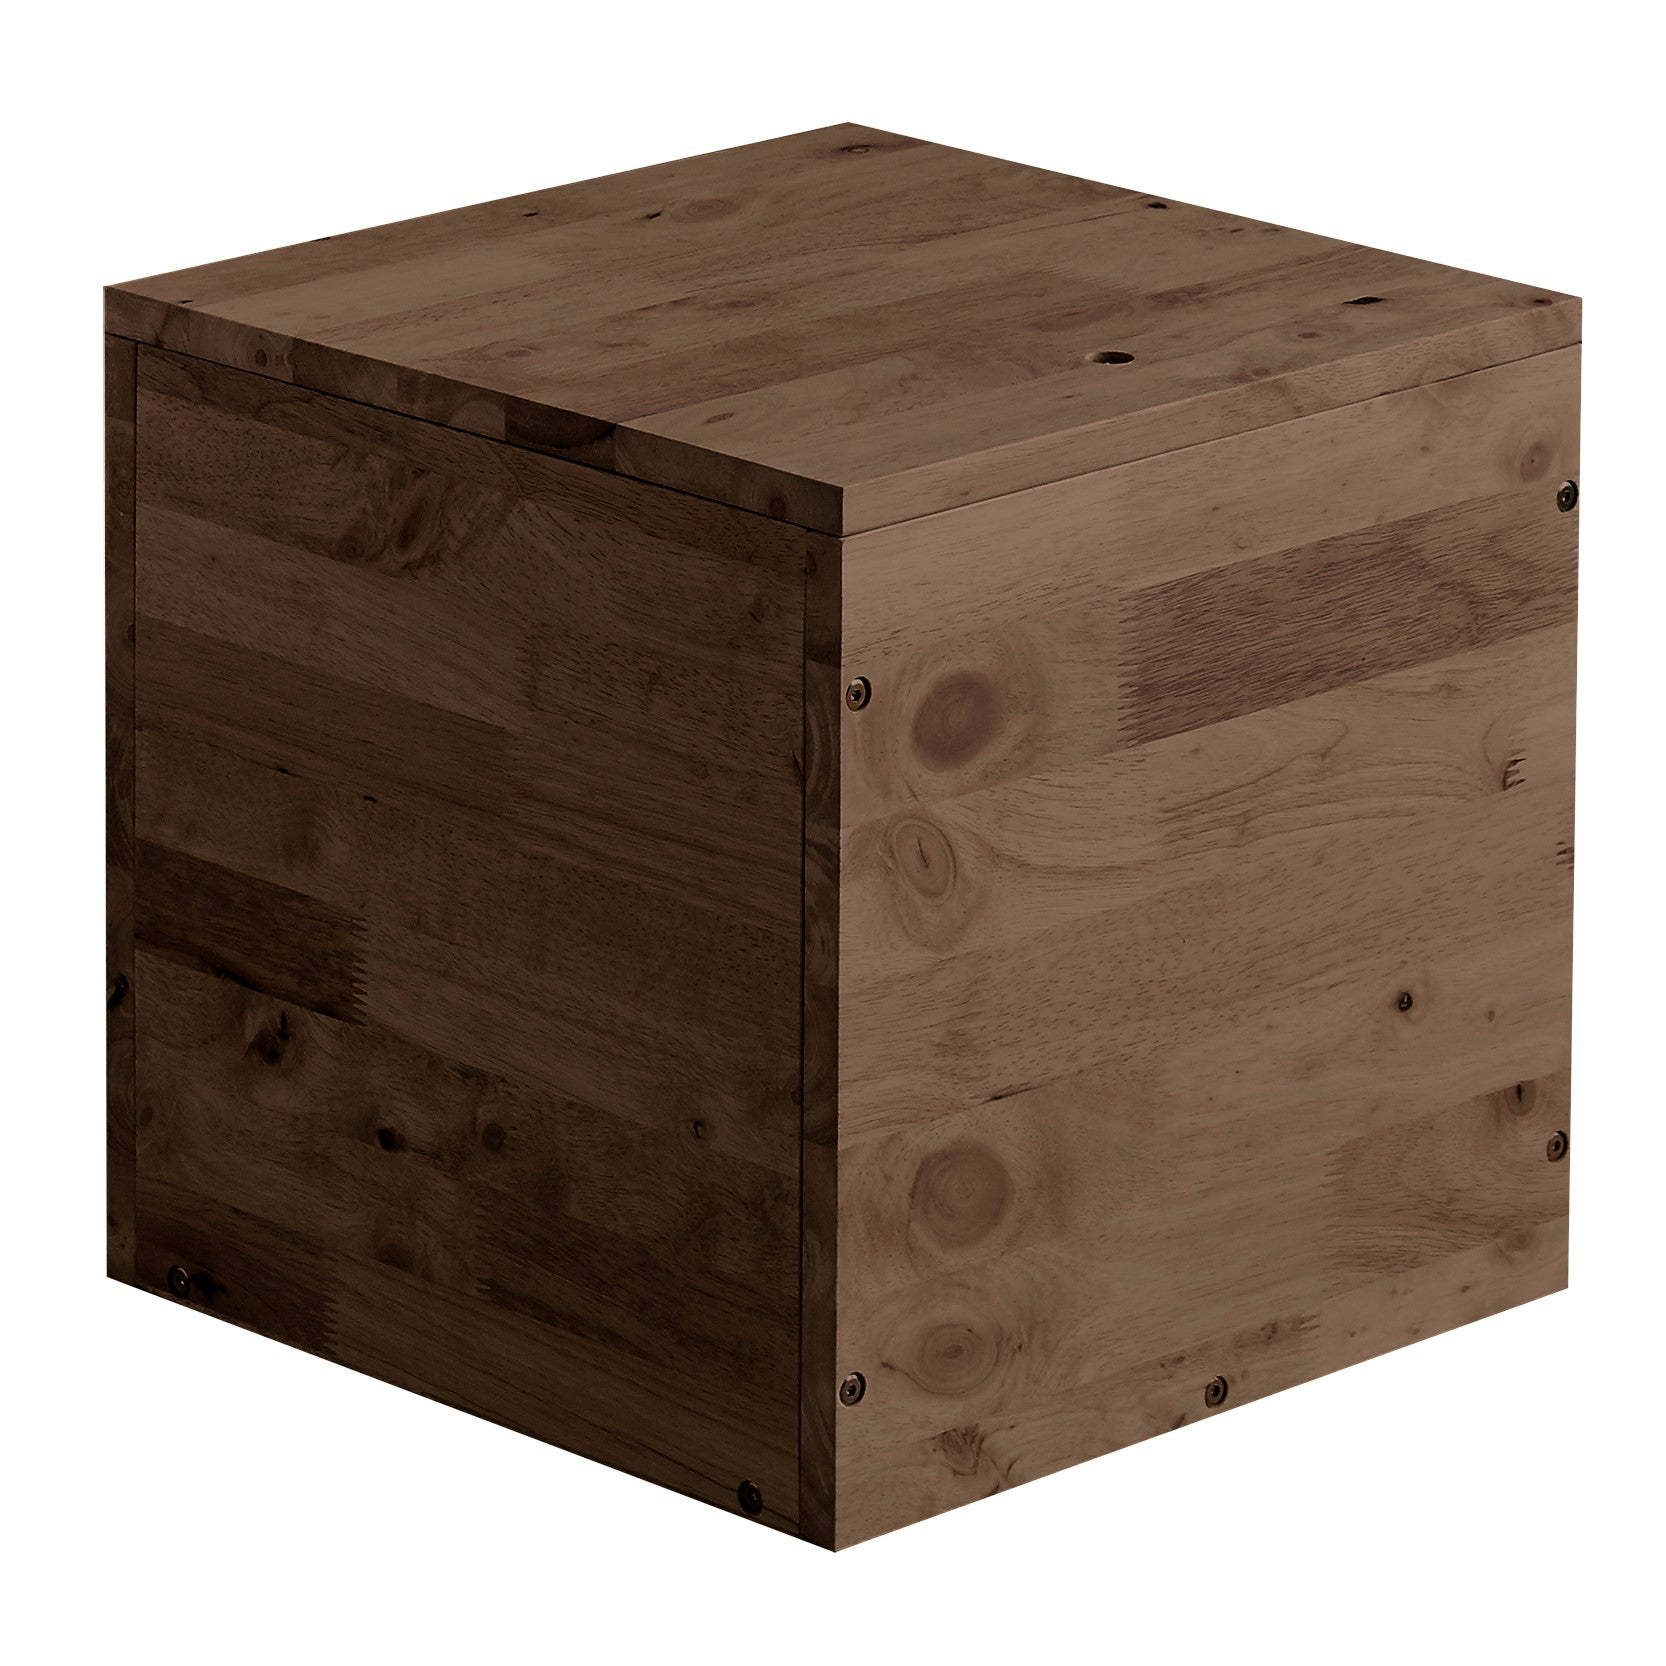 AMERICANA Solid Wood Tatami Square Side Cabinet Storage Box for Tatami (WIL-5155-2)